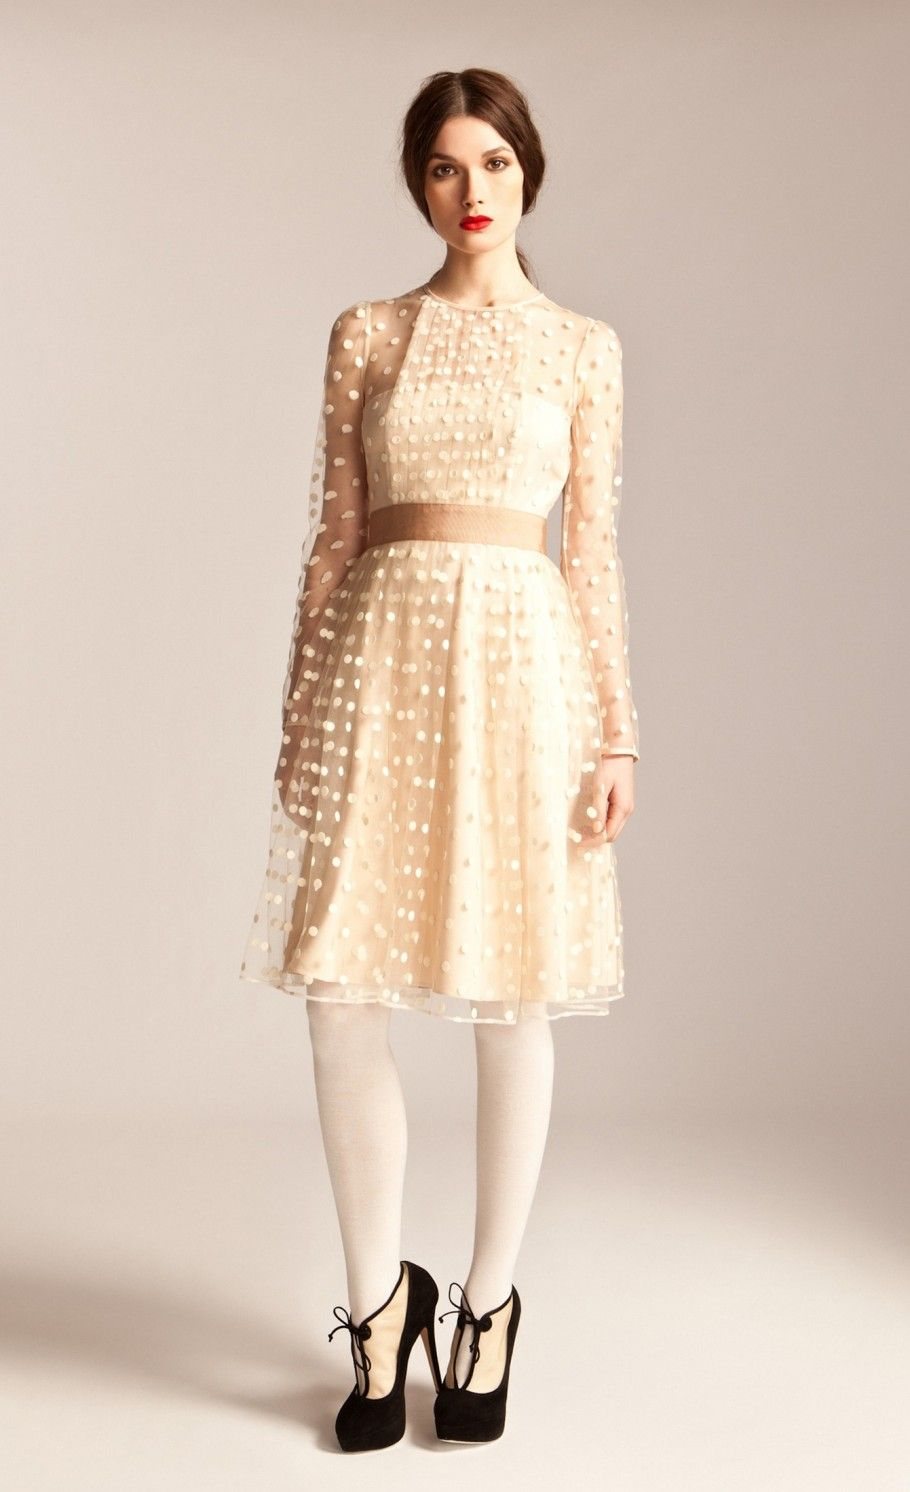 Alice temperley wedding dresses  Celia Dress  Designer Dress  Temperley London  If Only I was this